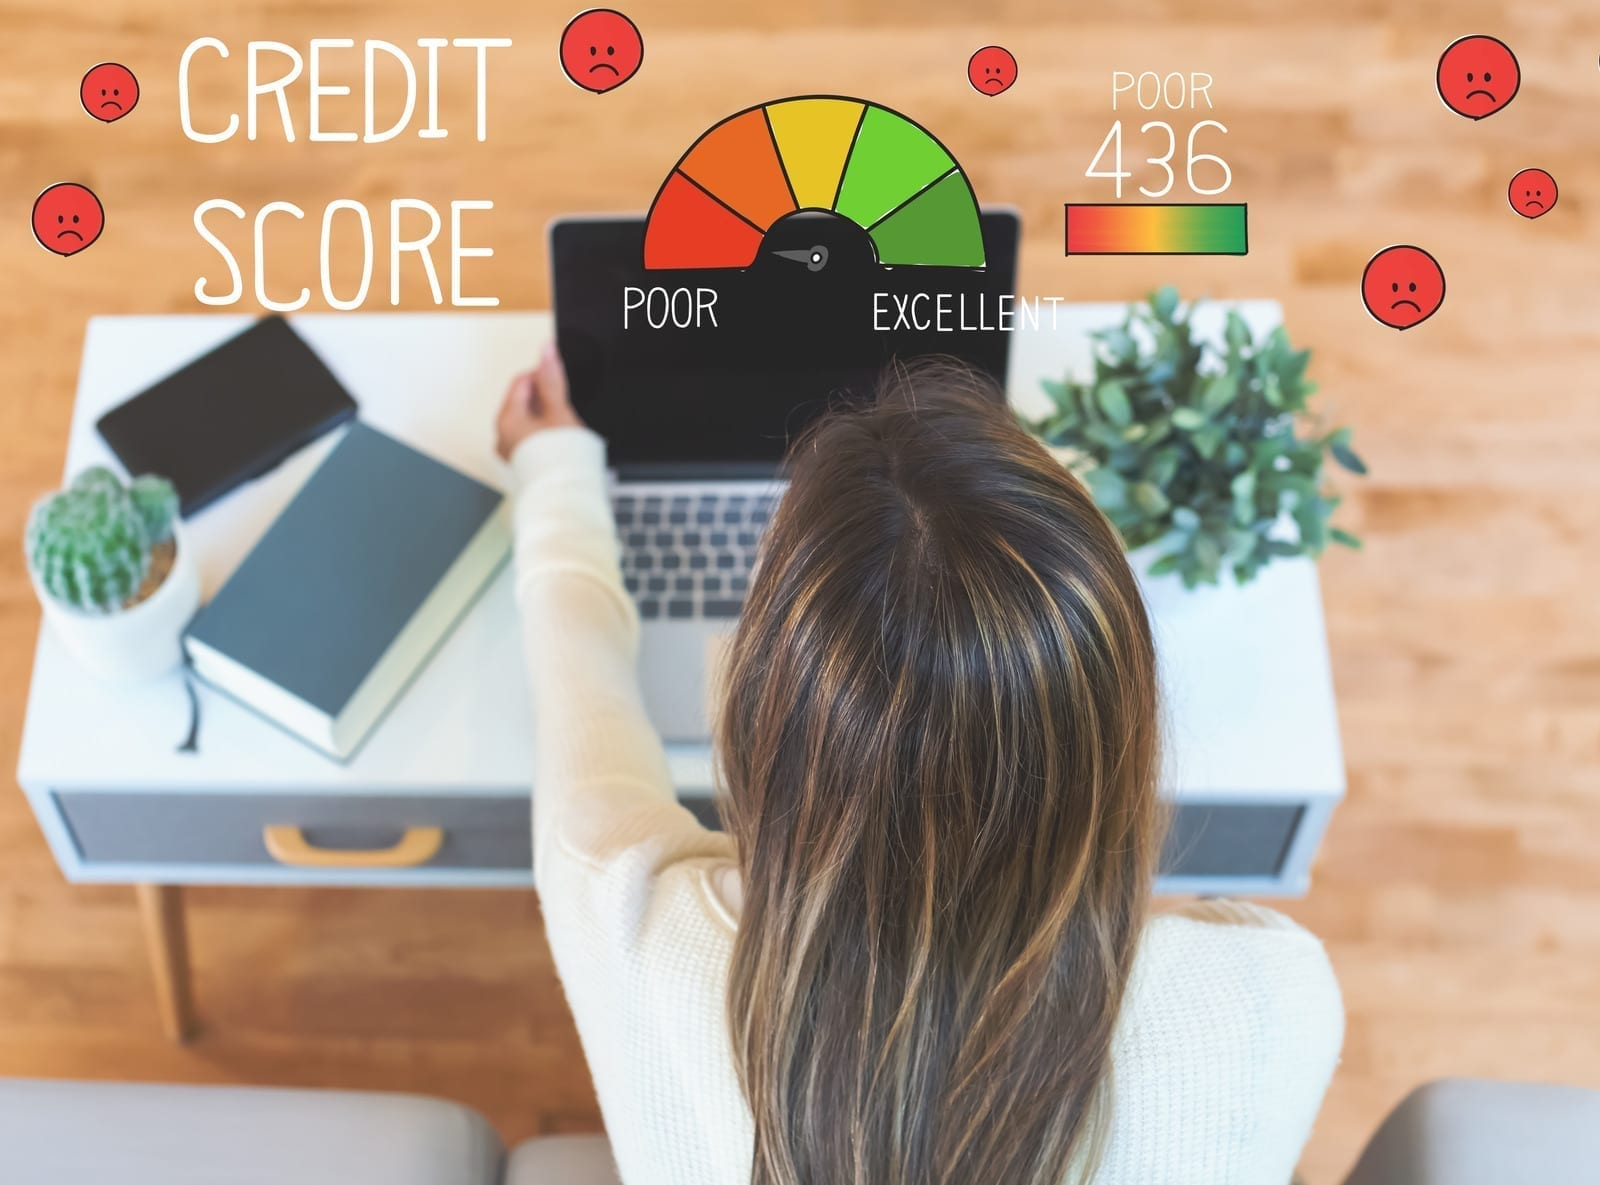 Financial difficulty in trying times: What are your options when faced with poor credit?